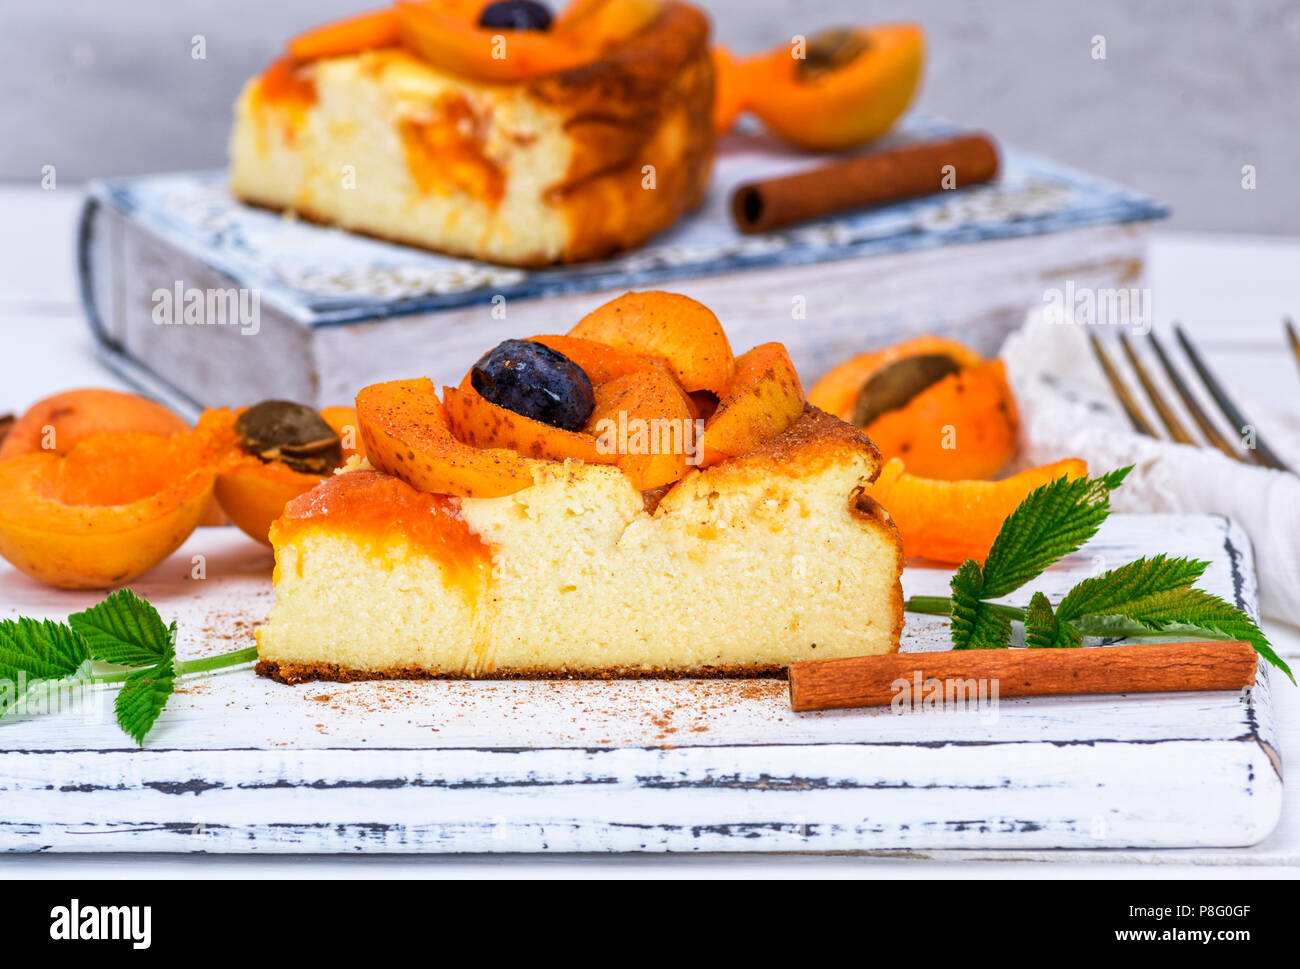 piece of cheesecake with apricots on a white wooden board, close up - Stock Image